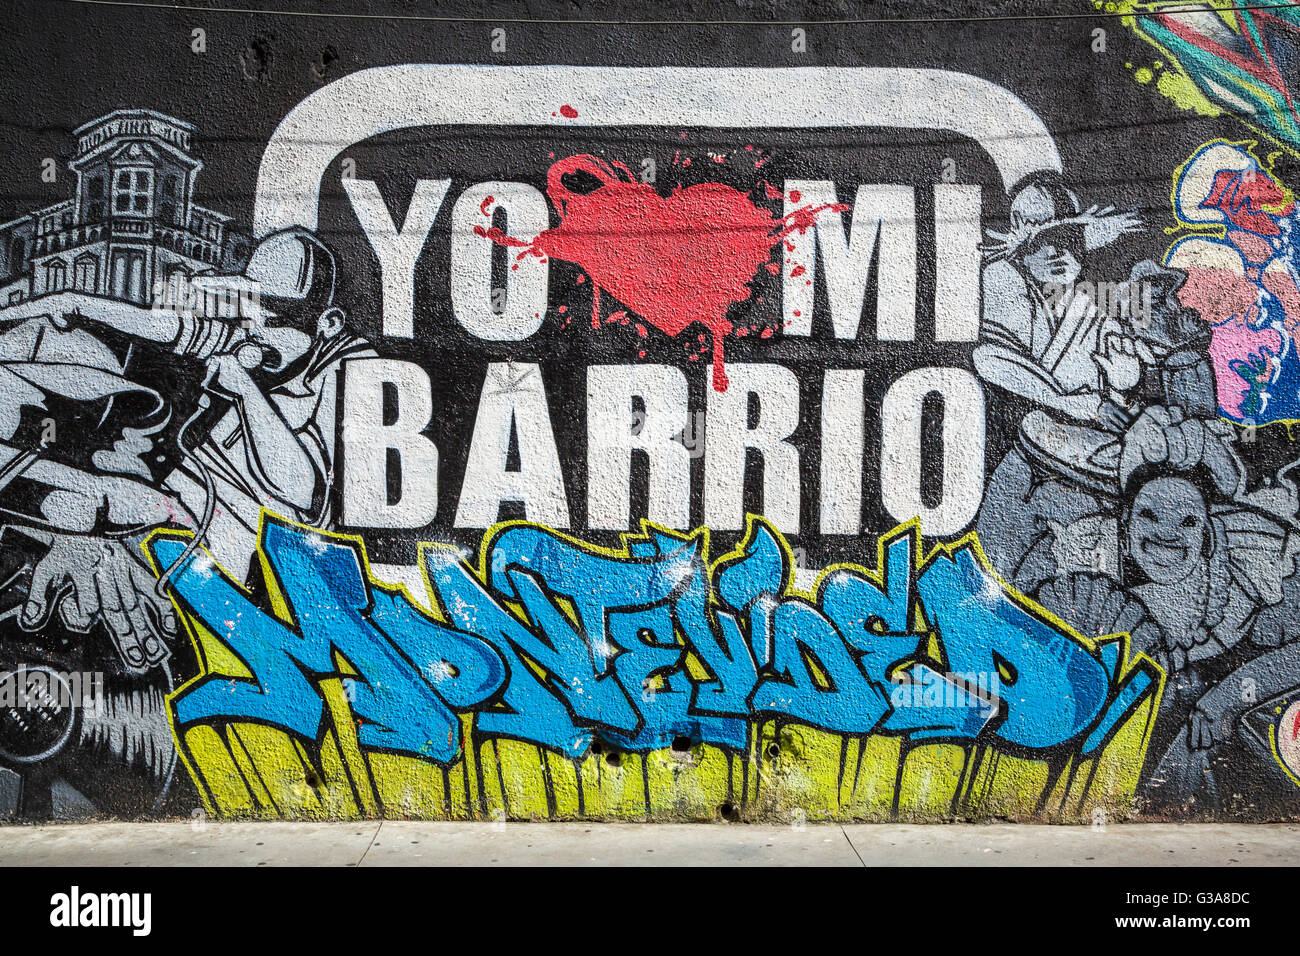 Street art and graffiti on the buildings of montevideo uruguay south america